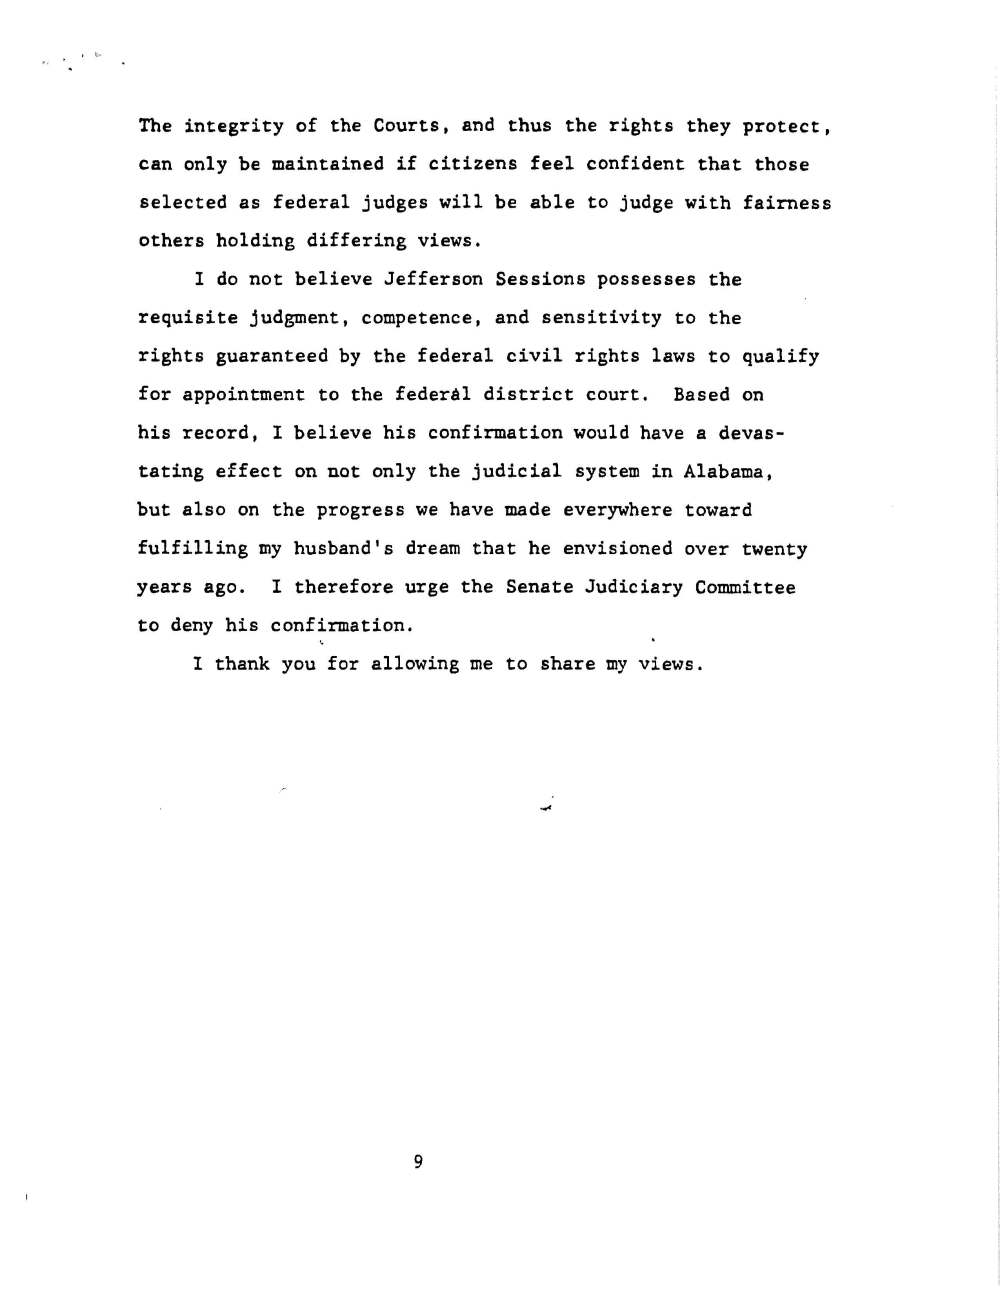 scott-king-1986-letter-and-testimony-signed_page_10